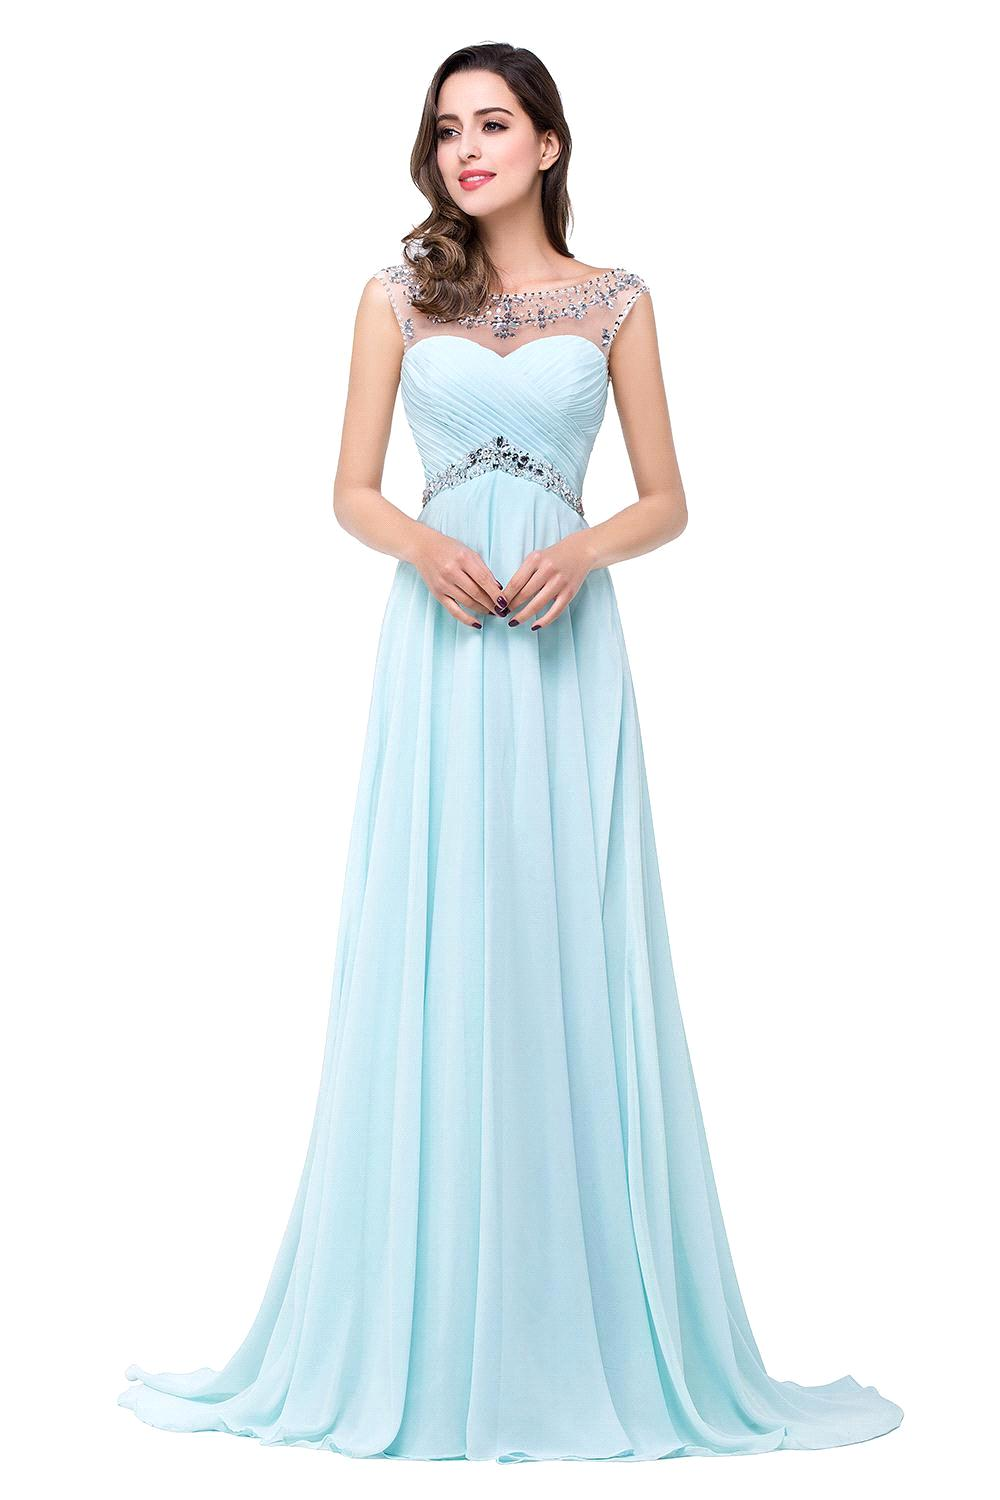 Tolle Prom Dresses For Cheap Under 50 Bilder - Brautkleider Ideen ...